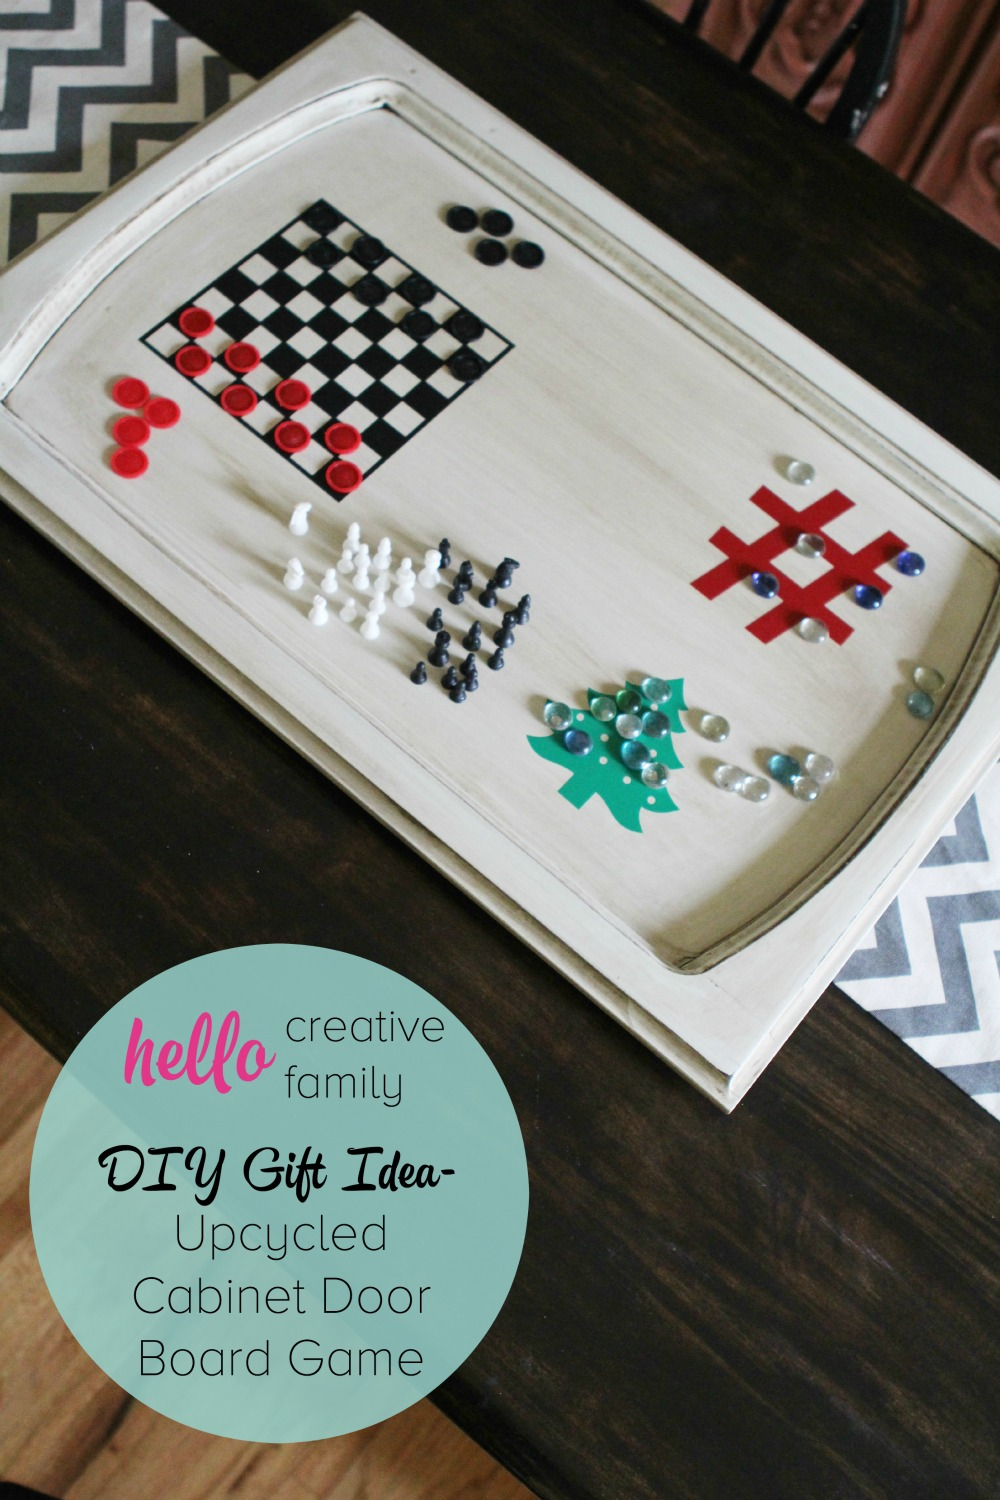 DIY Gift Idea- Upcycled Cabinet Door Board Game